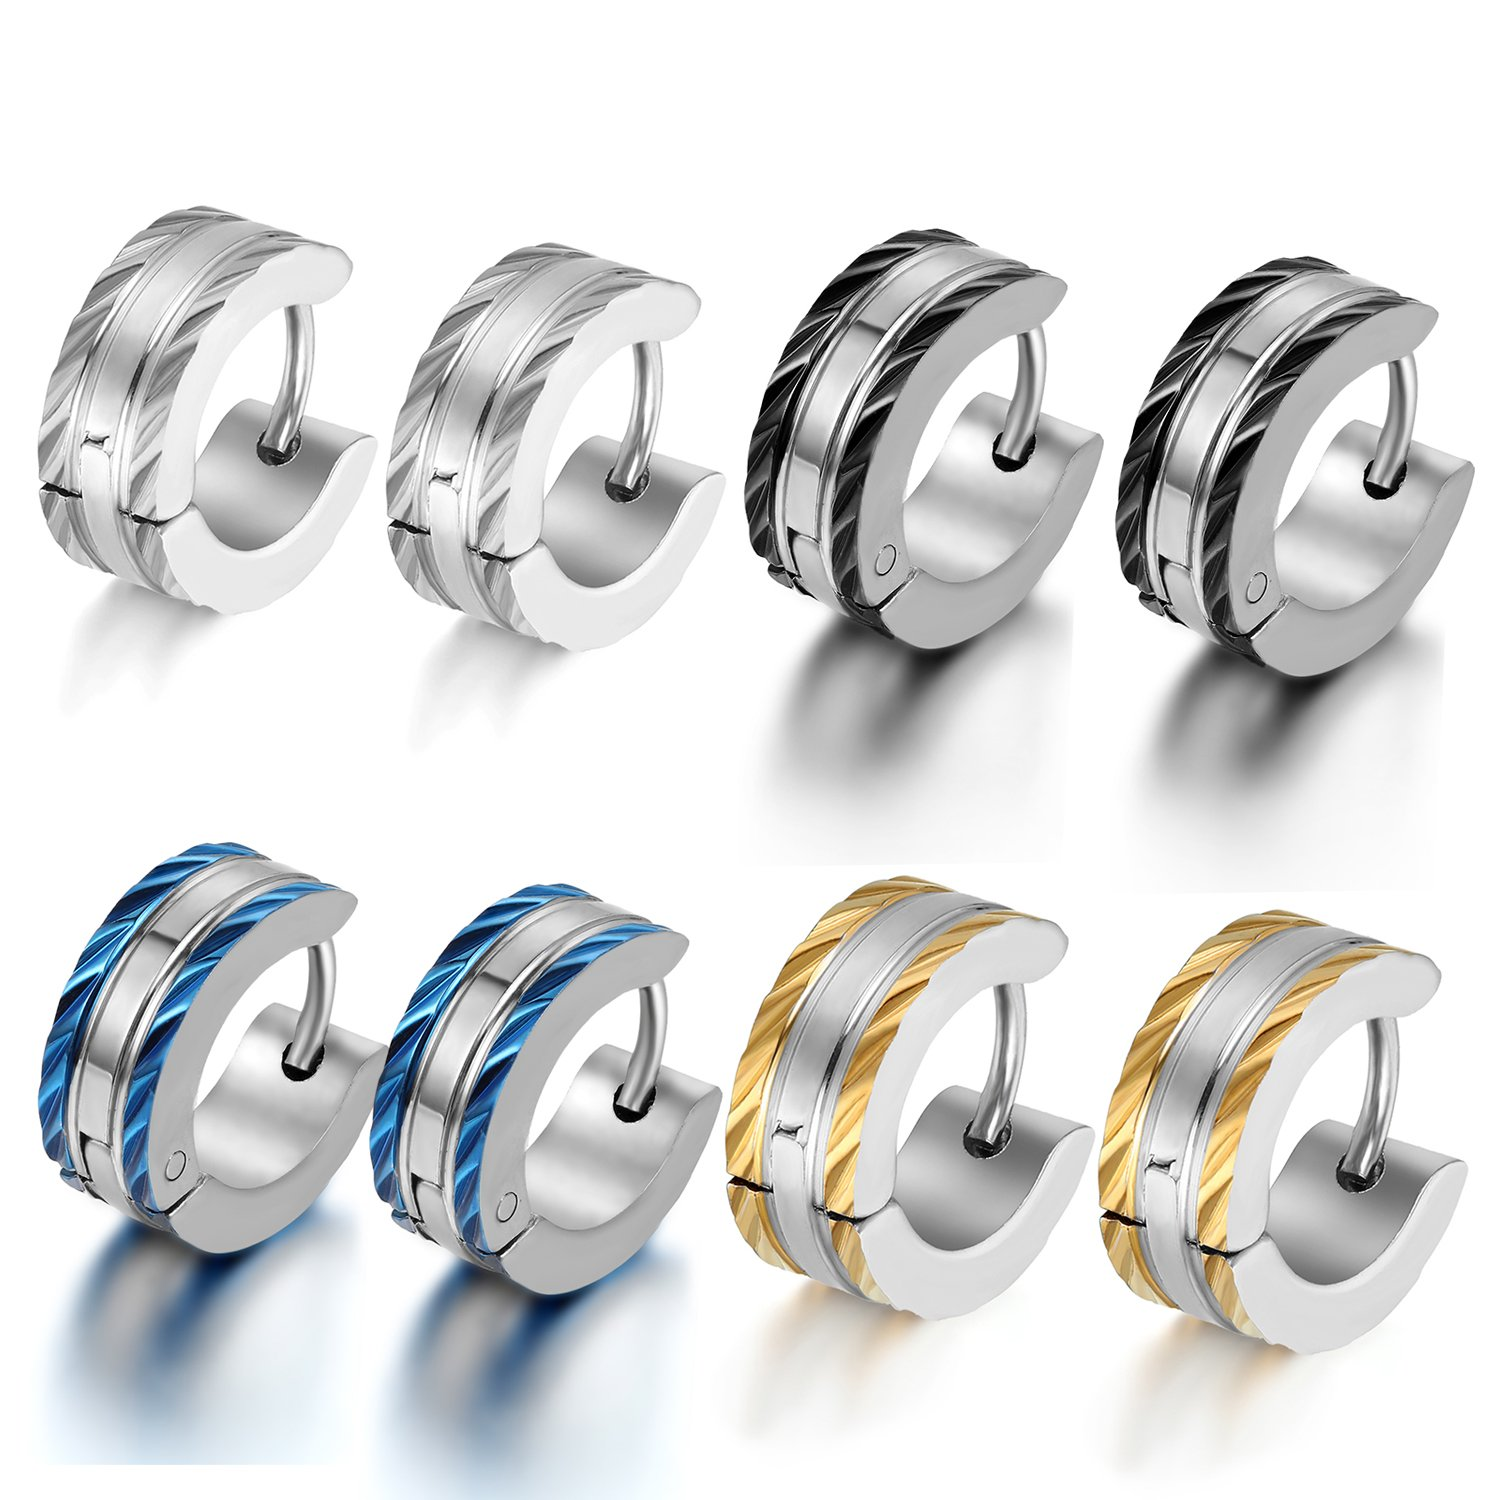 Oidea 8pcs 5MM Stainless Steel Mens Punk Hinge Hoop Earrings,Tiny ,Light Earrings,Assorted Color,Hypoallergenic O030017-CA